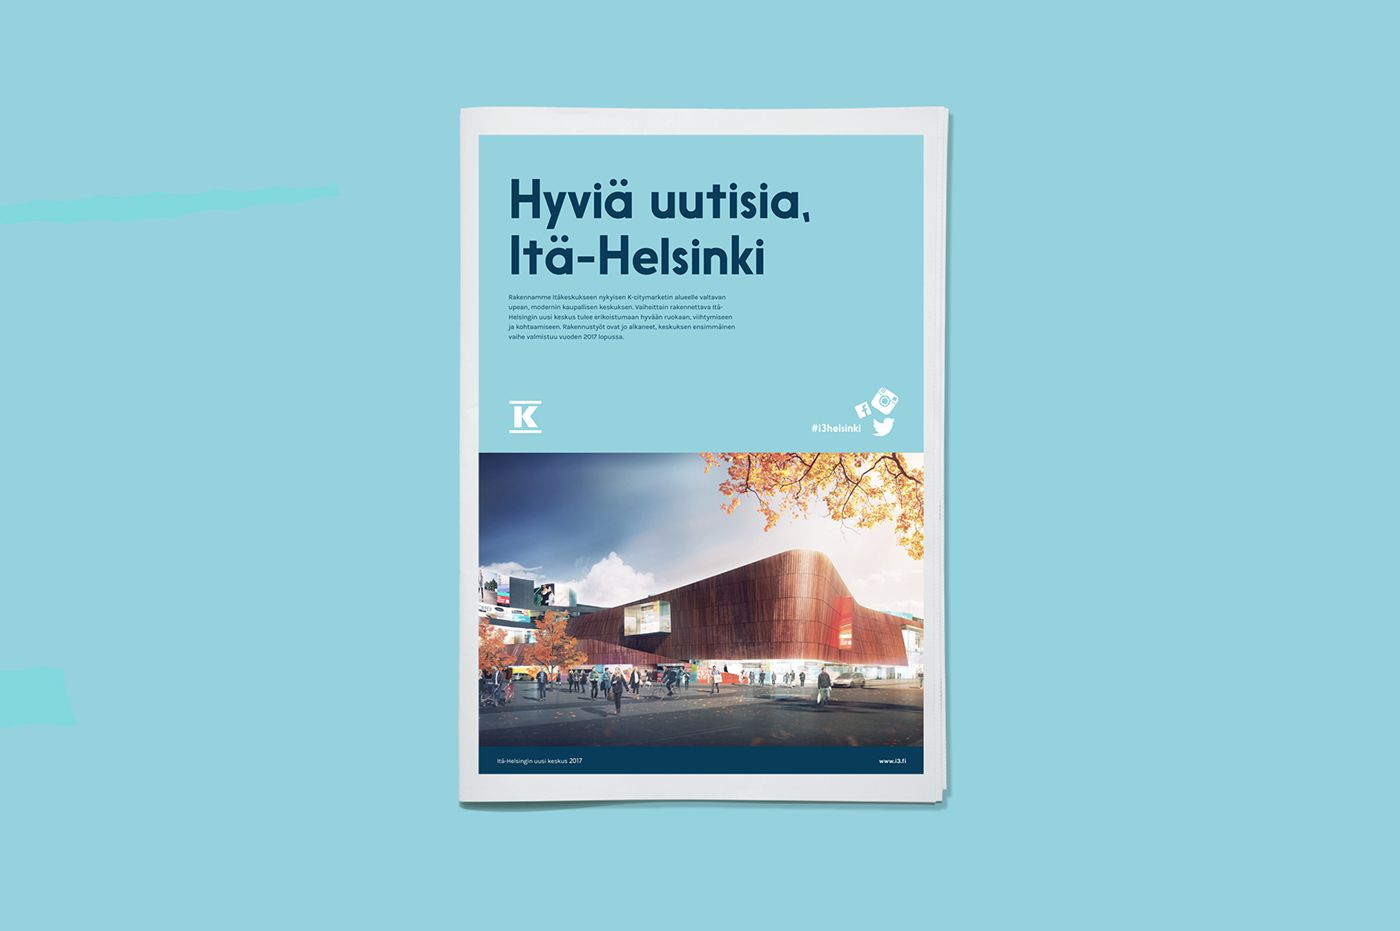 https://www.behance.net/gallery/37296757/Kesko-i3